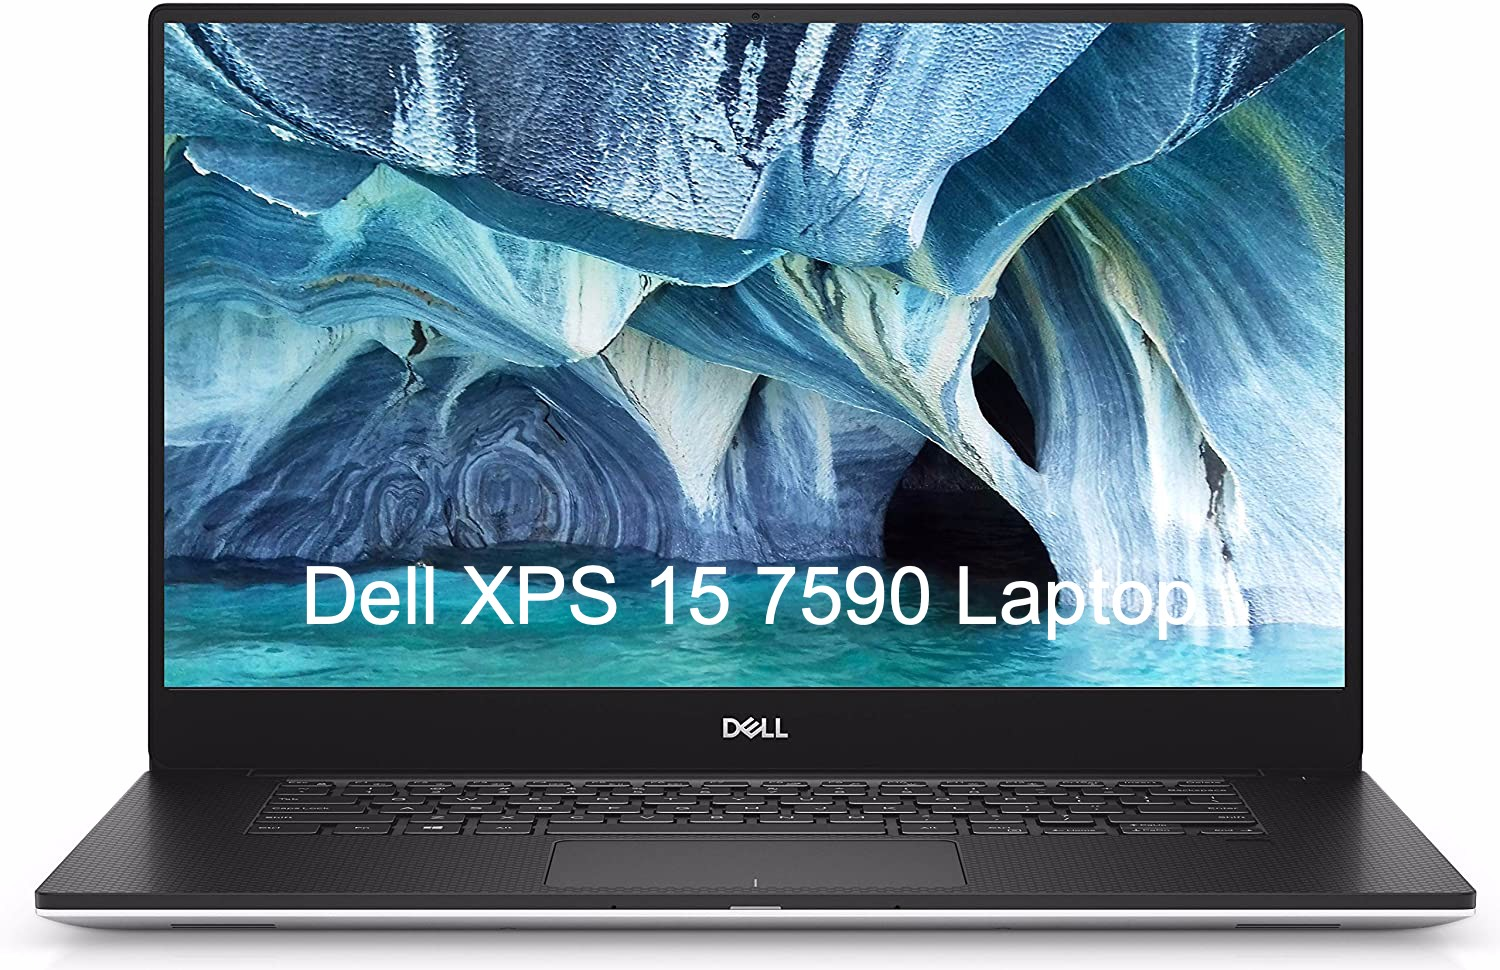 Dell cyber monday sale XPS 15 7590 Laptop